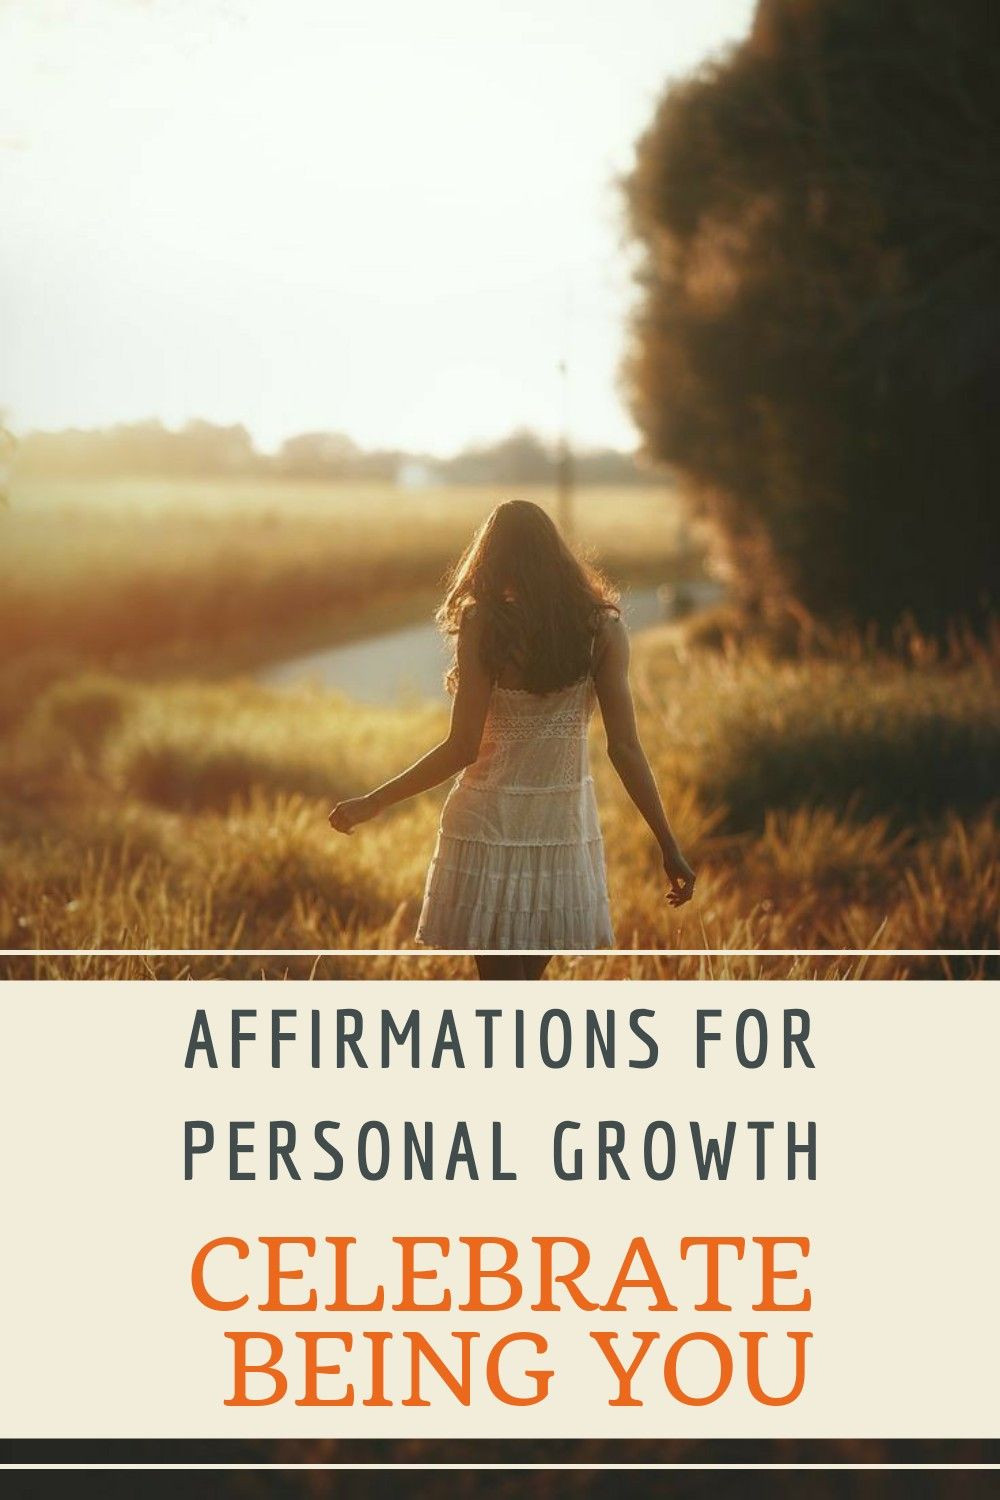 Tools for health and wellbeing. Affirmations for personal growth and soul discovery. Read this simple but effective affirmation and celebrate being you. Gain understanding of your soul journey and learn to love yourself. . #whatsheseeks